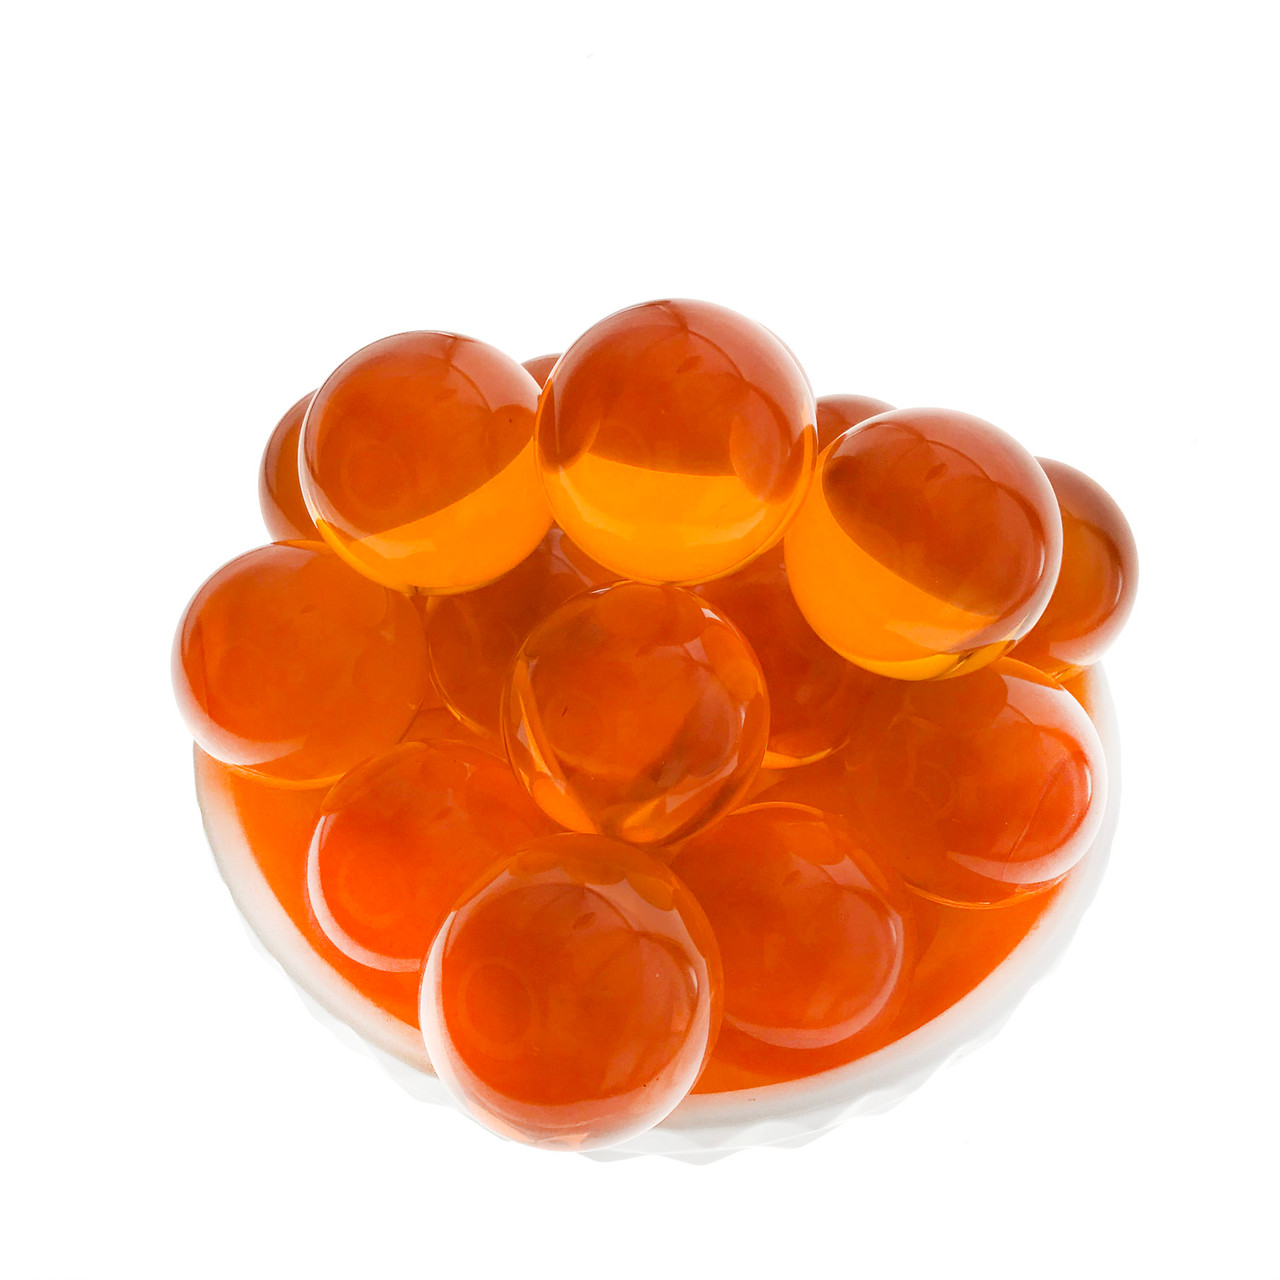 Big Orange Pearls for Pearl Fishery, Bag of 48 Balls (PMPF0015)